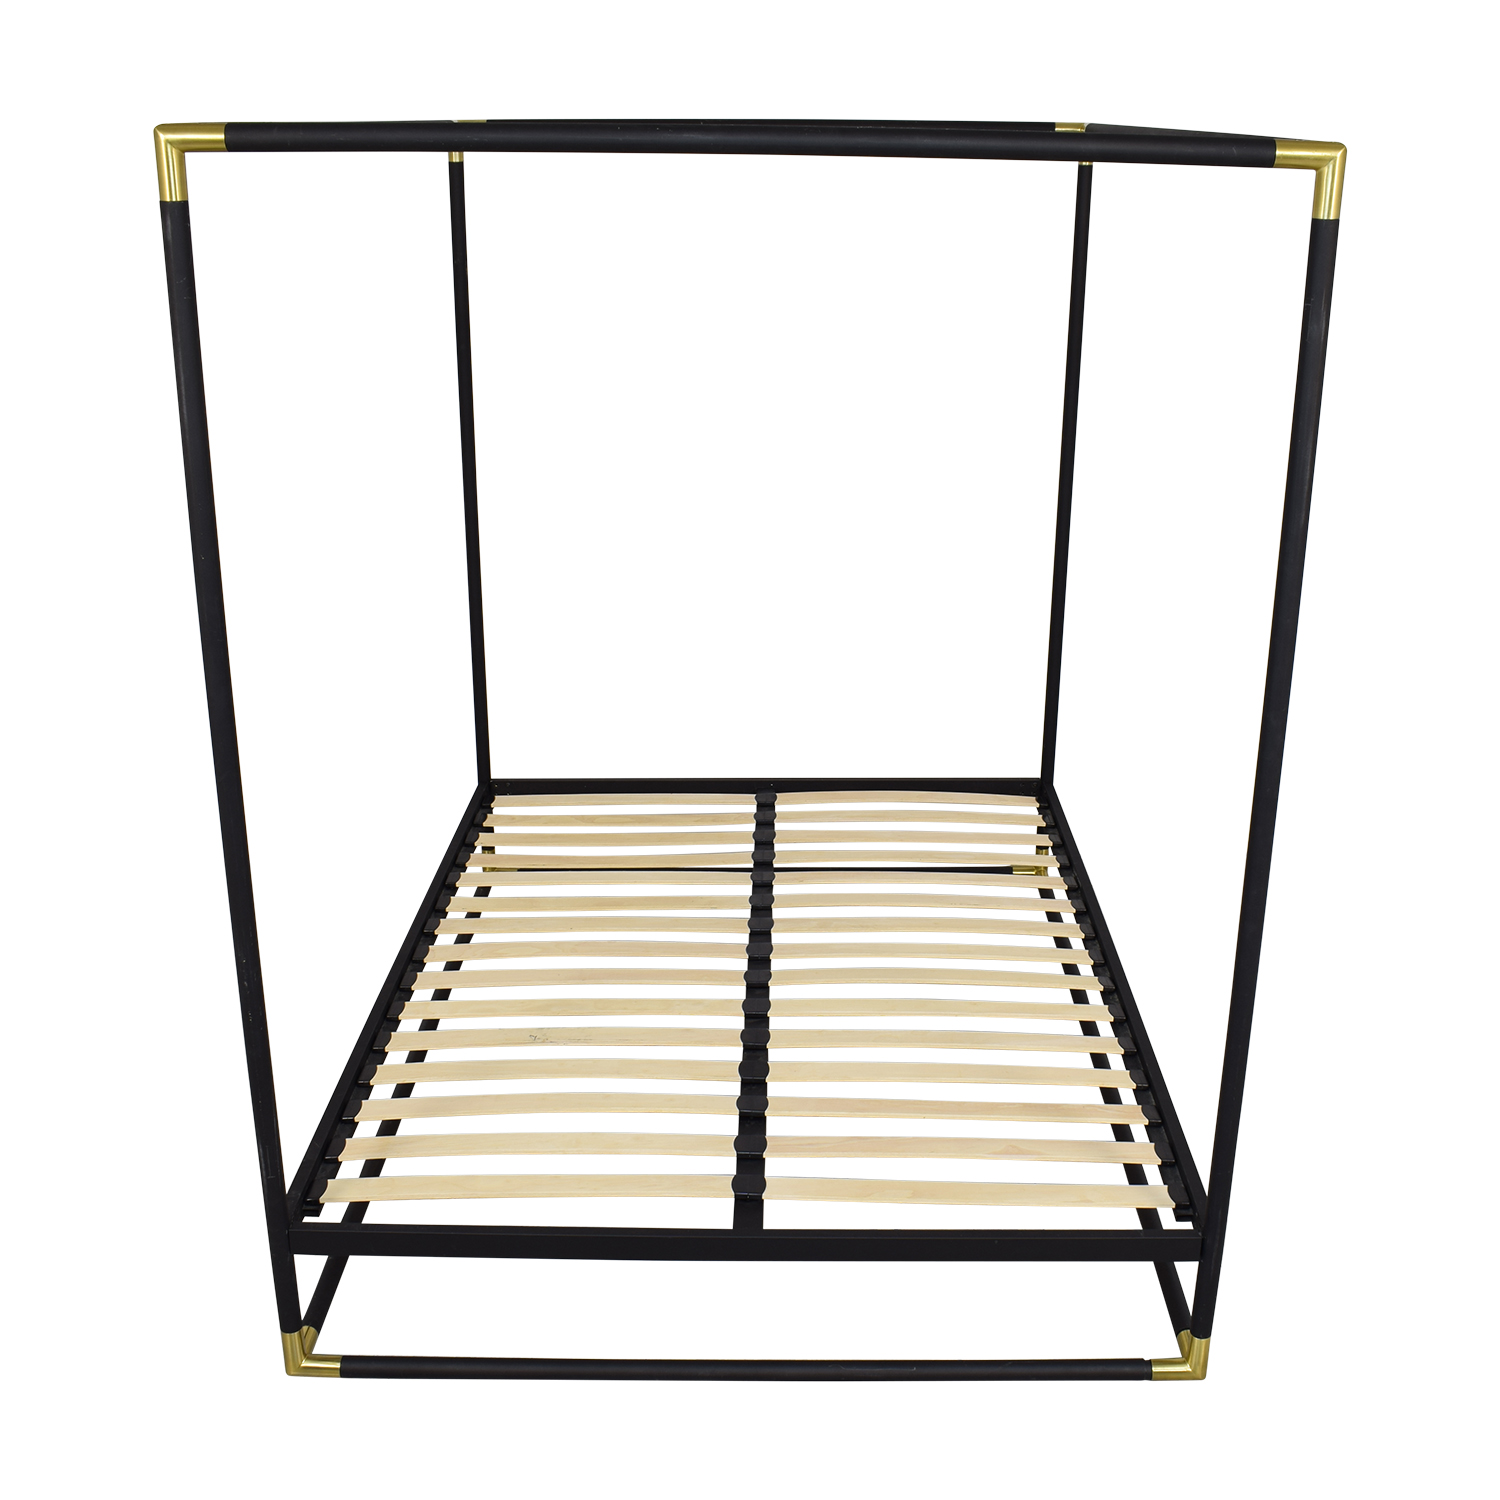 CB2 CB2 Frame Canopy Queen Bed nyc